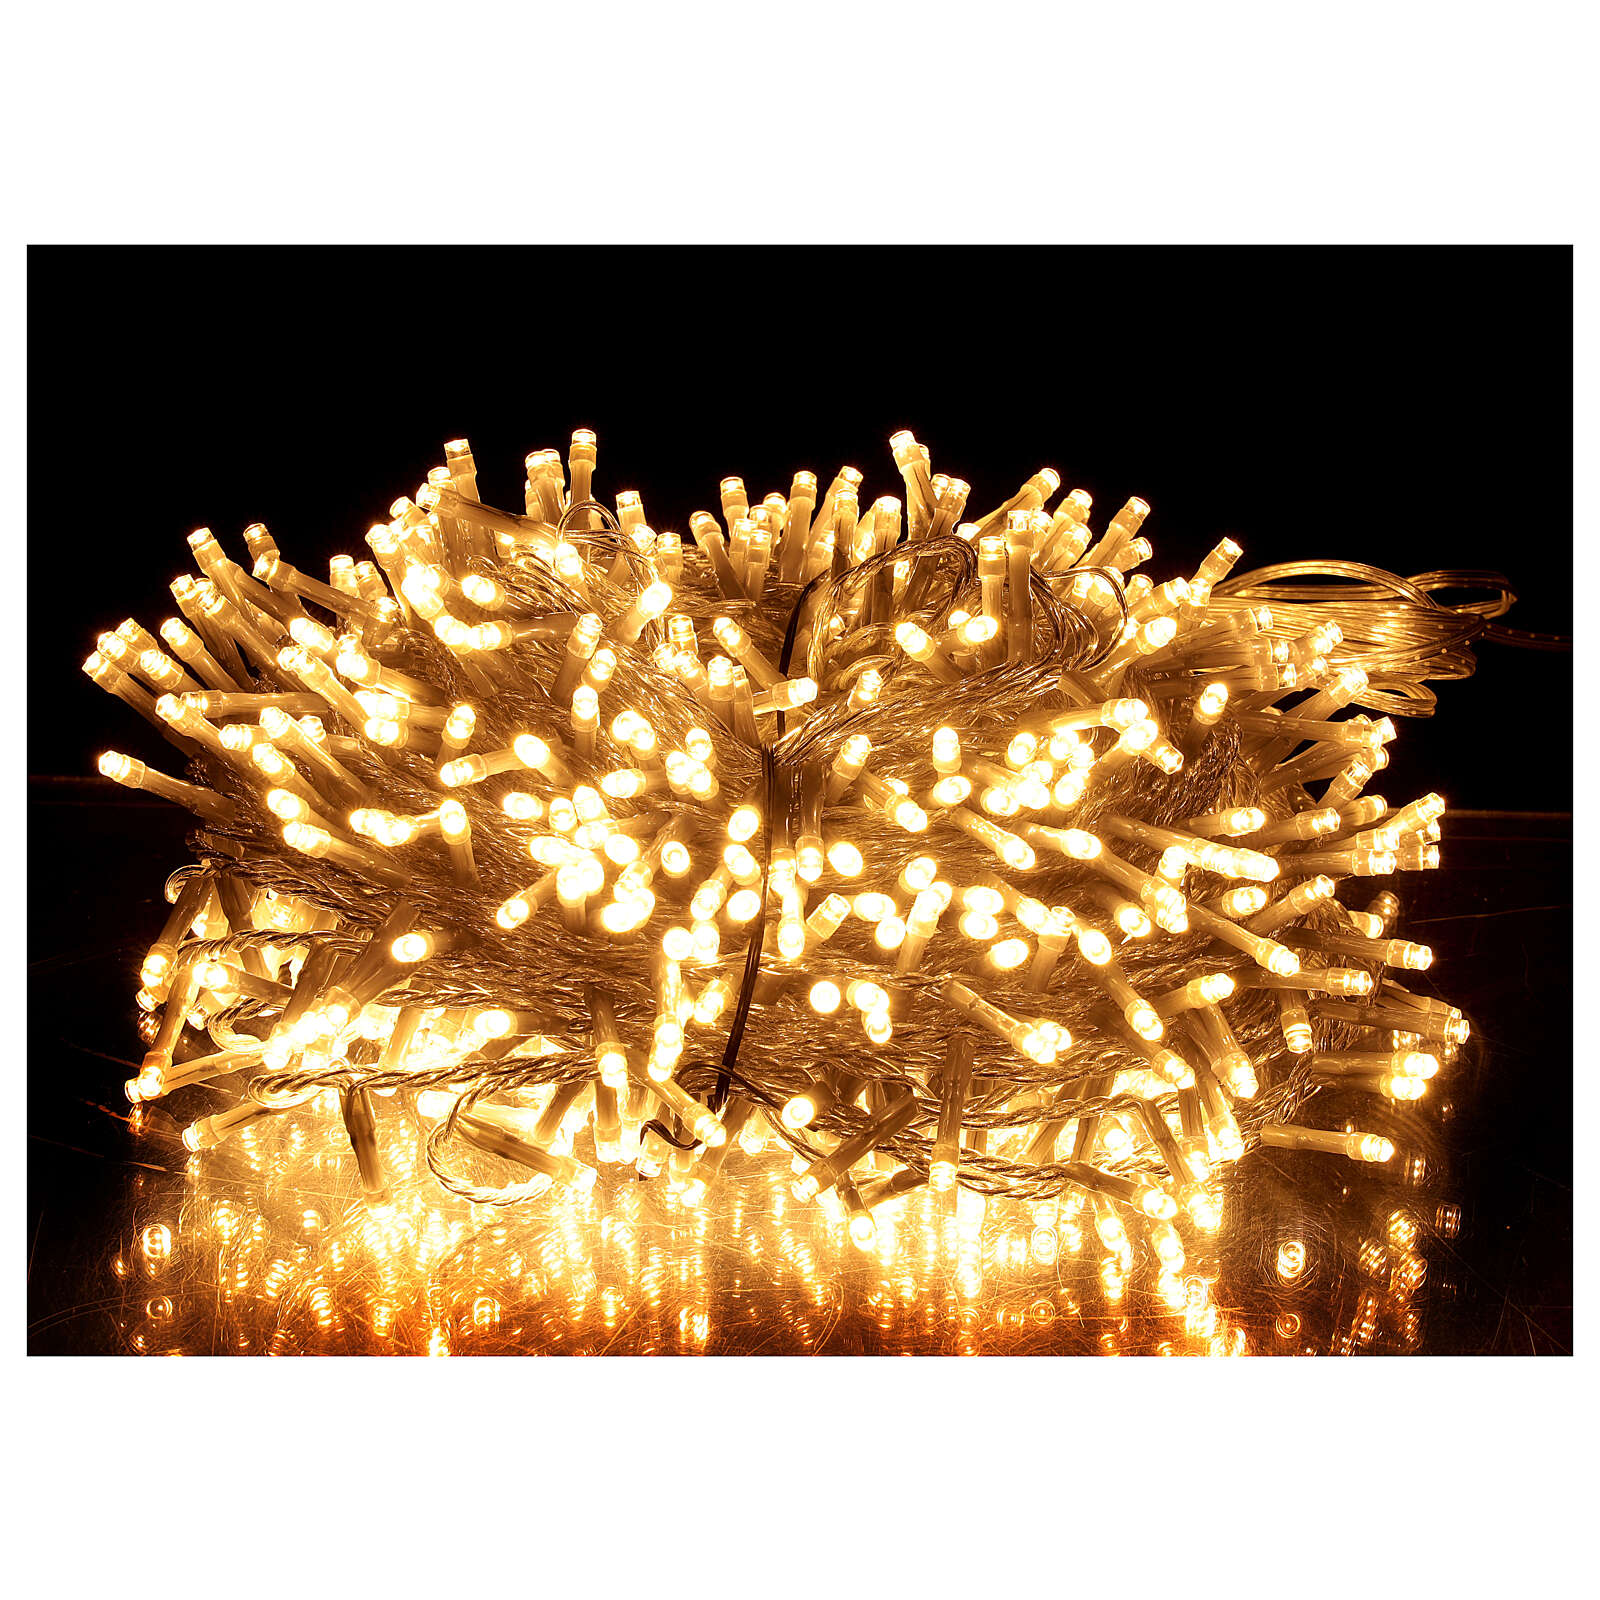 Christmas lights 1000 warm white LEDs indoor outdoor light options 3